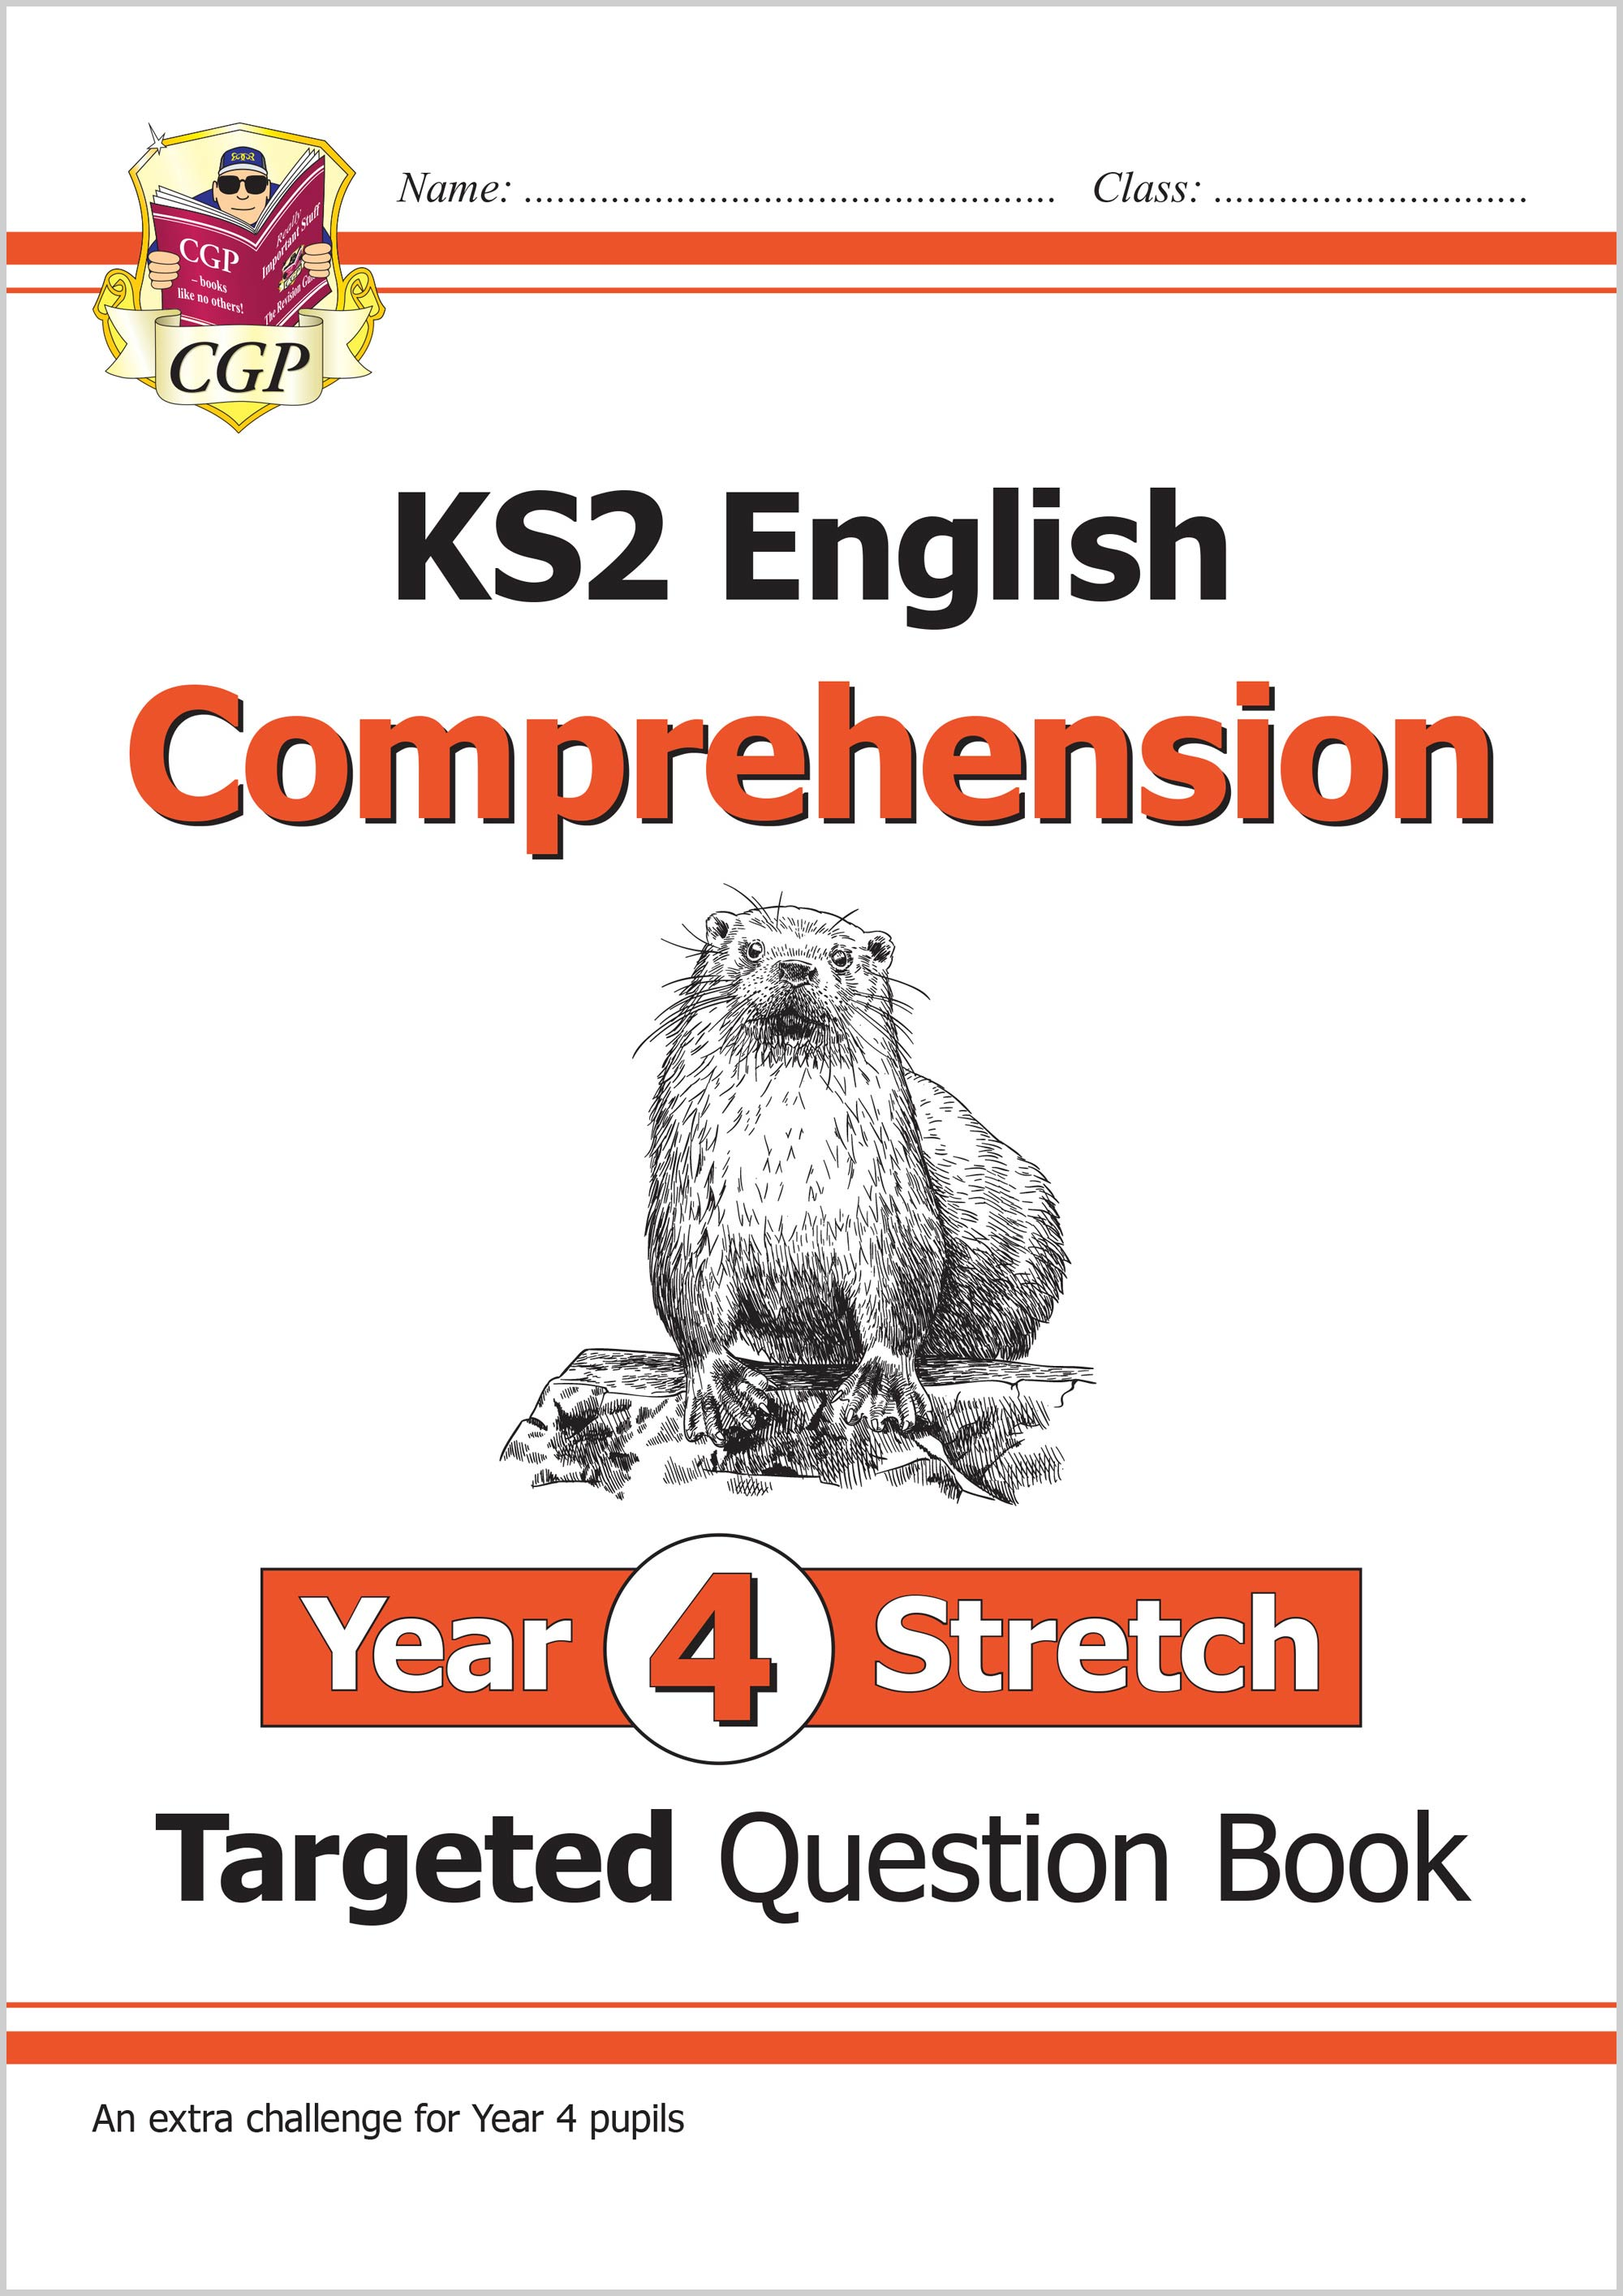 E4HCW21 - New KS2 English Targeted Question Book: Challenging Comprehension - Year 4 Stretch (with A